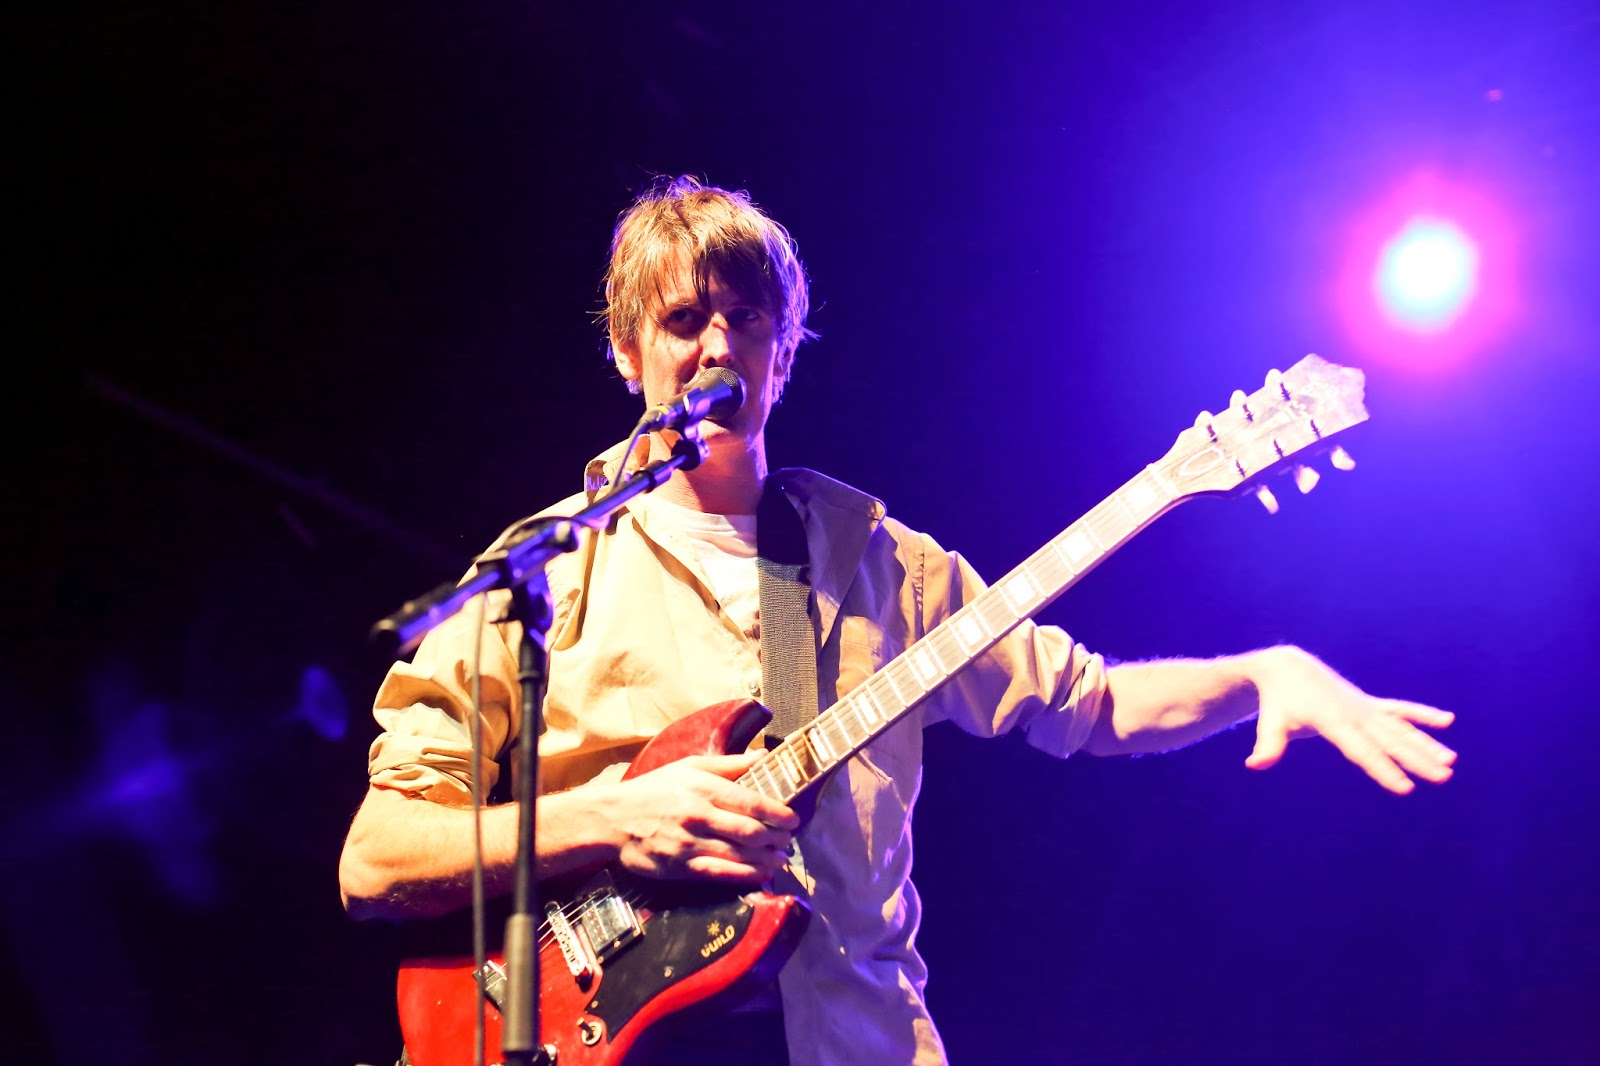 Stephen Malkmus & The Jicks at The Forum, London